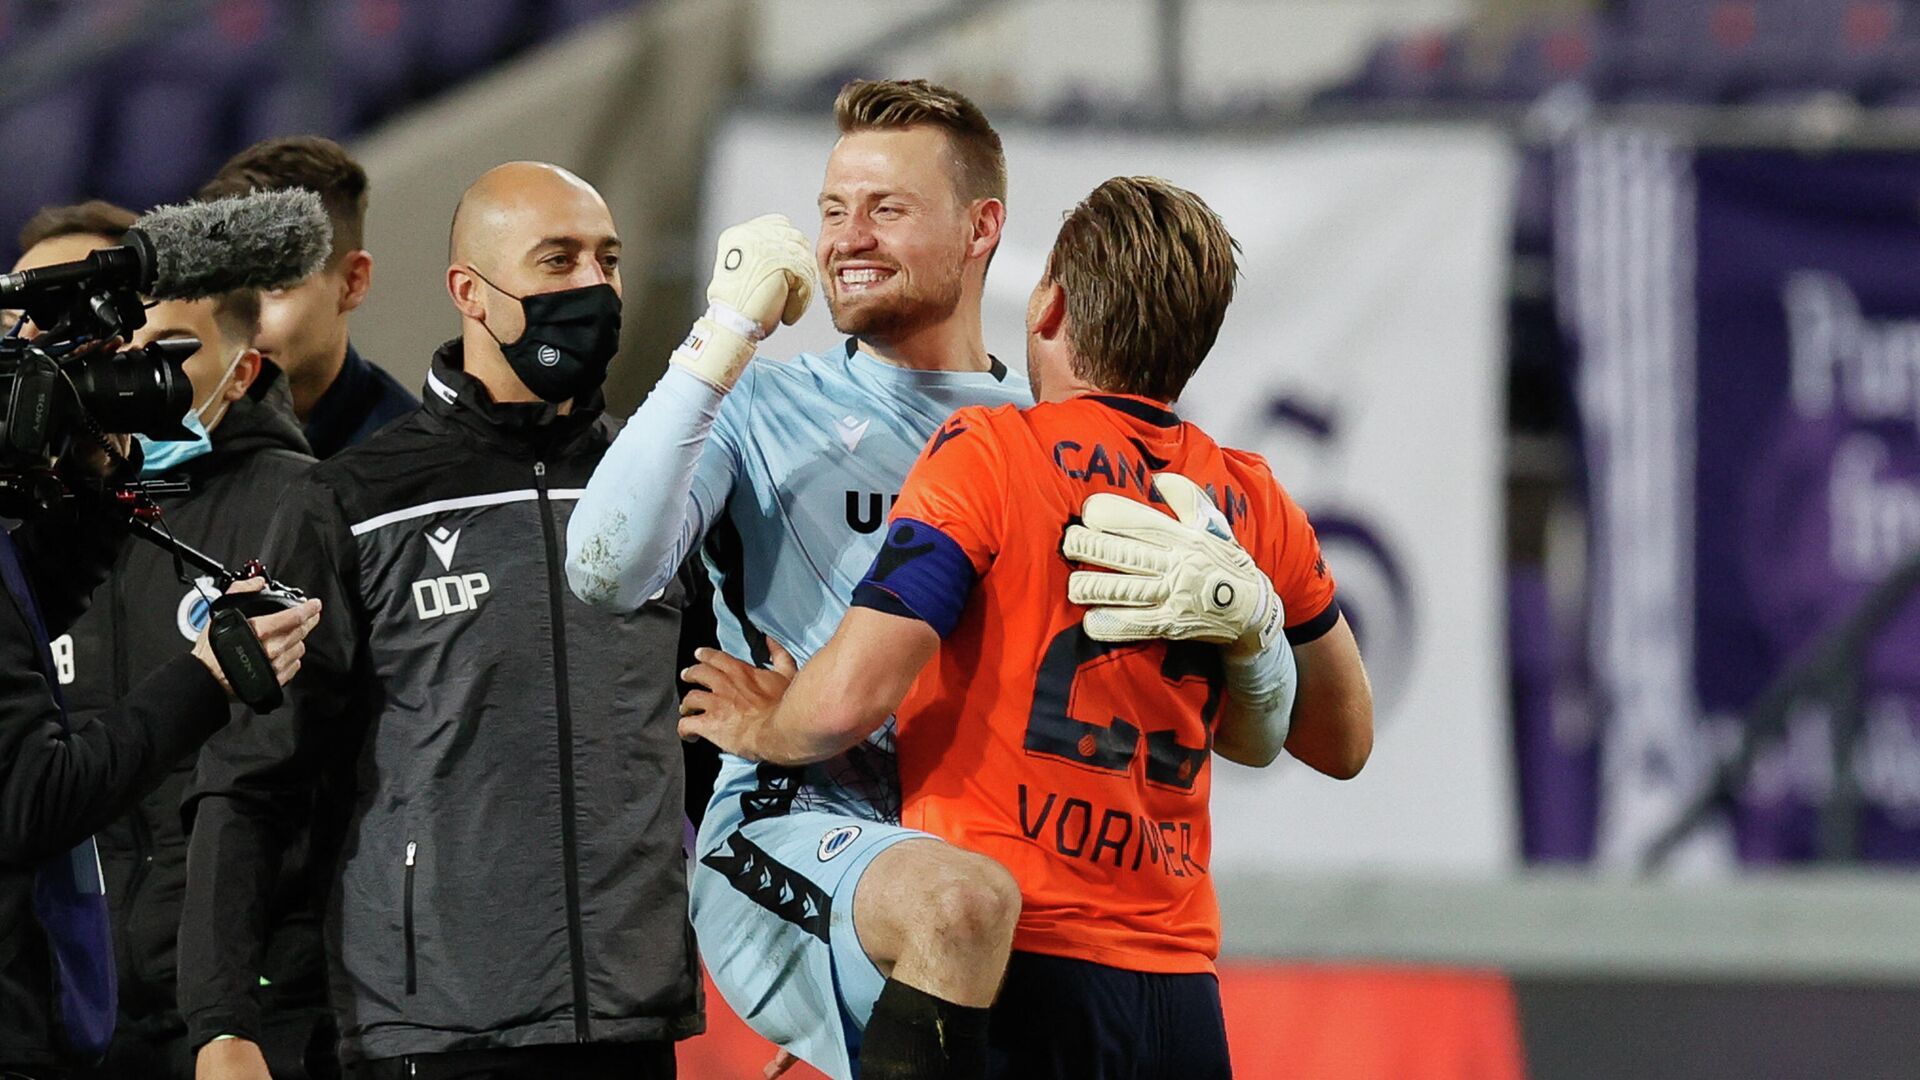 Brugge's Belgium goalkeeper Simon Mignolet and Brugge's Belgium  midfielder Ruud Vormer celebrate after winning the title during the Belgian Jupiler Pro League football match between RSC Anderlecht and Club Brugge KV in Brussels on May 20, 2021. (Photo by BRUNO FAHY / various sources / AFP) / Belgium OUT - РИА Новости, 1920, 21.05.2021